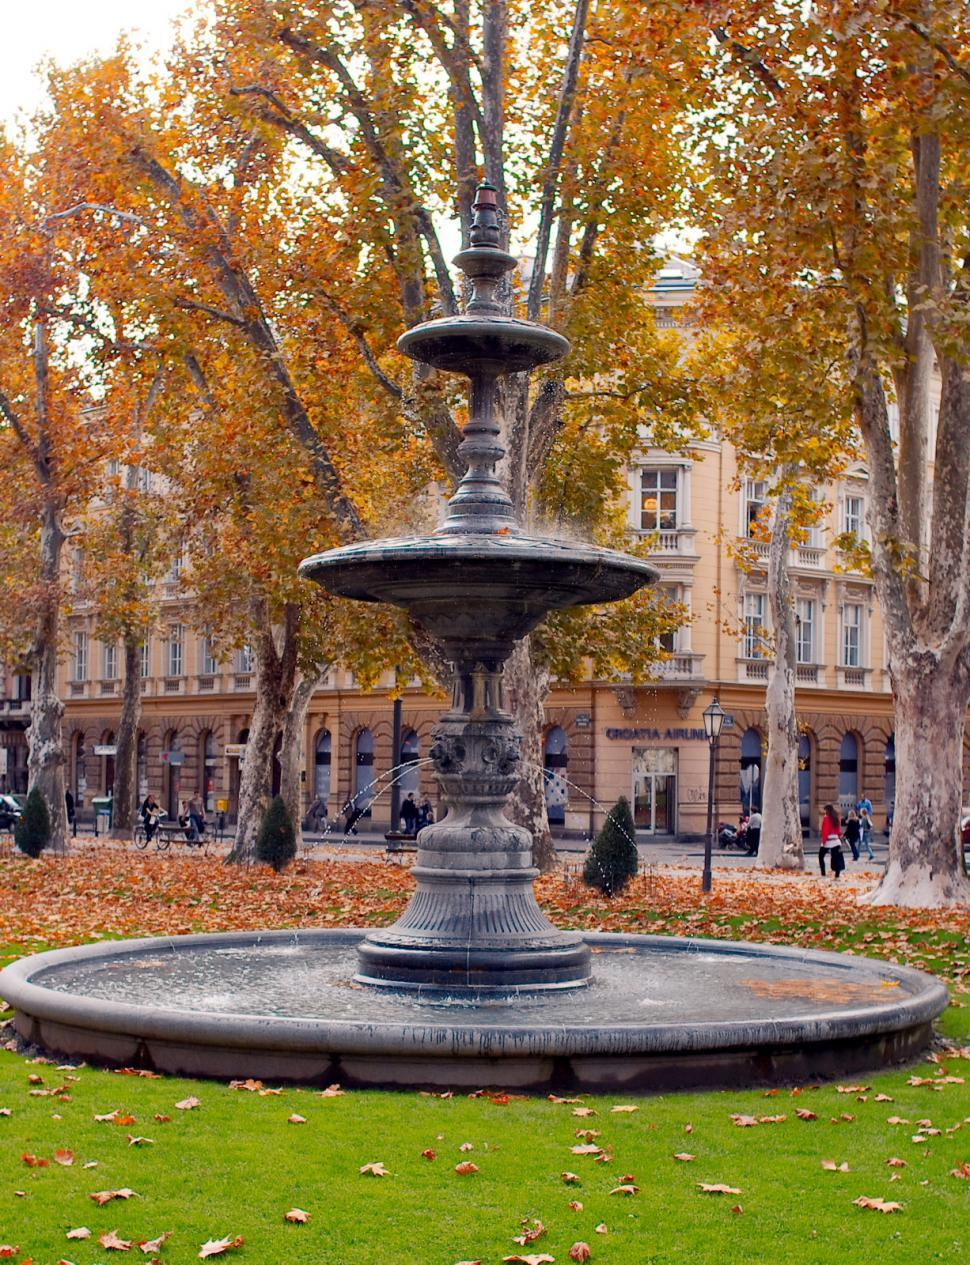 Download Free Stock HD Photo of Old fountain Online